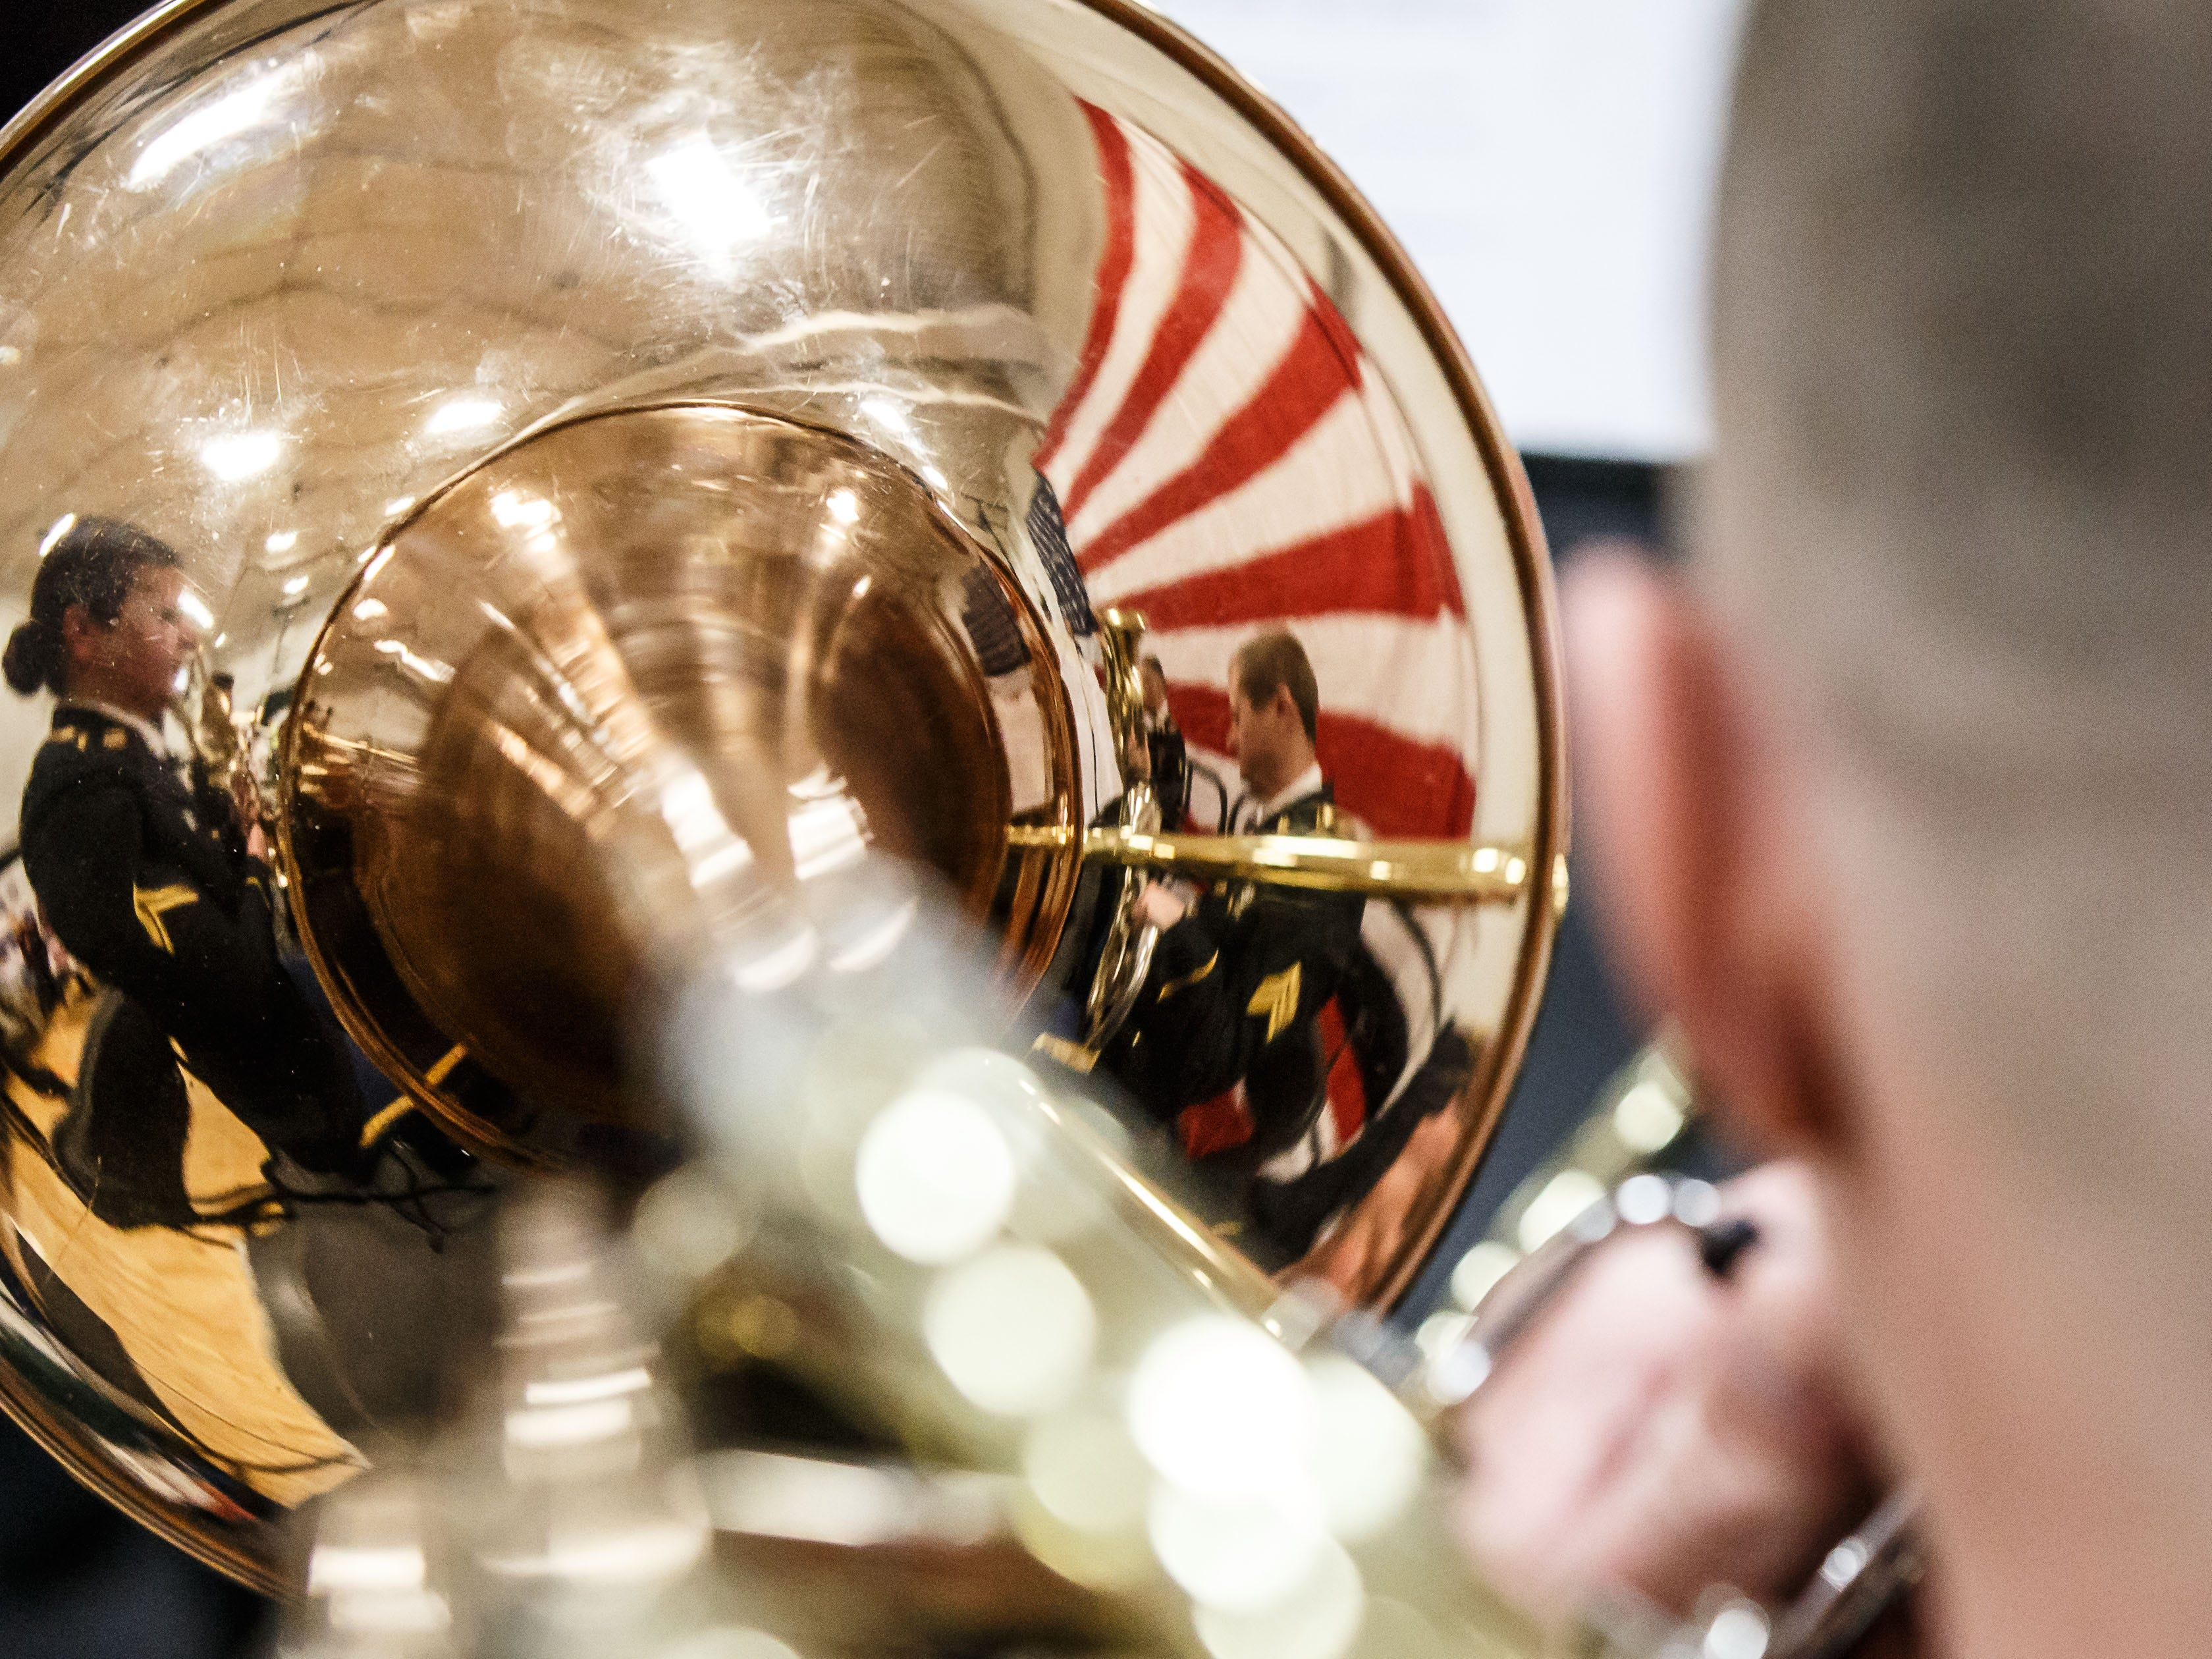 A flag reflects on the bell of a horn as the 132nd Wisconsin Army National Guard Band performs at the seventh annual Operation Honor: A Salute to Veterans in Waukesha on Saturday, Nov. 10, 2018.